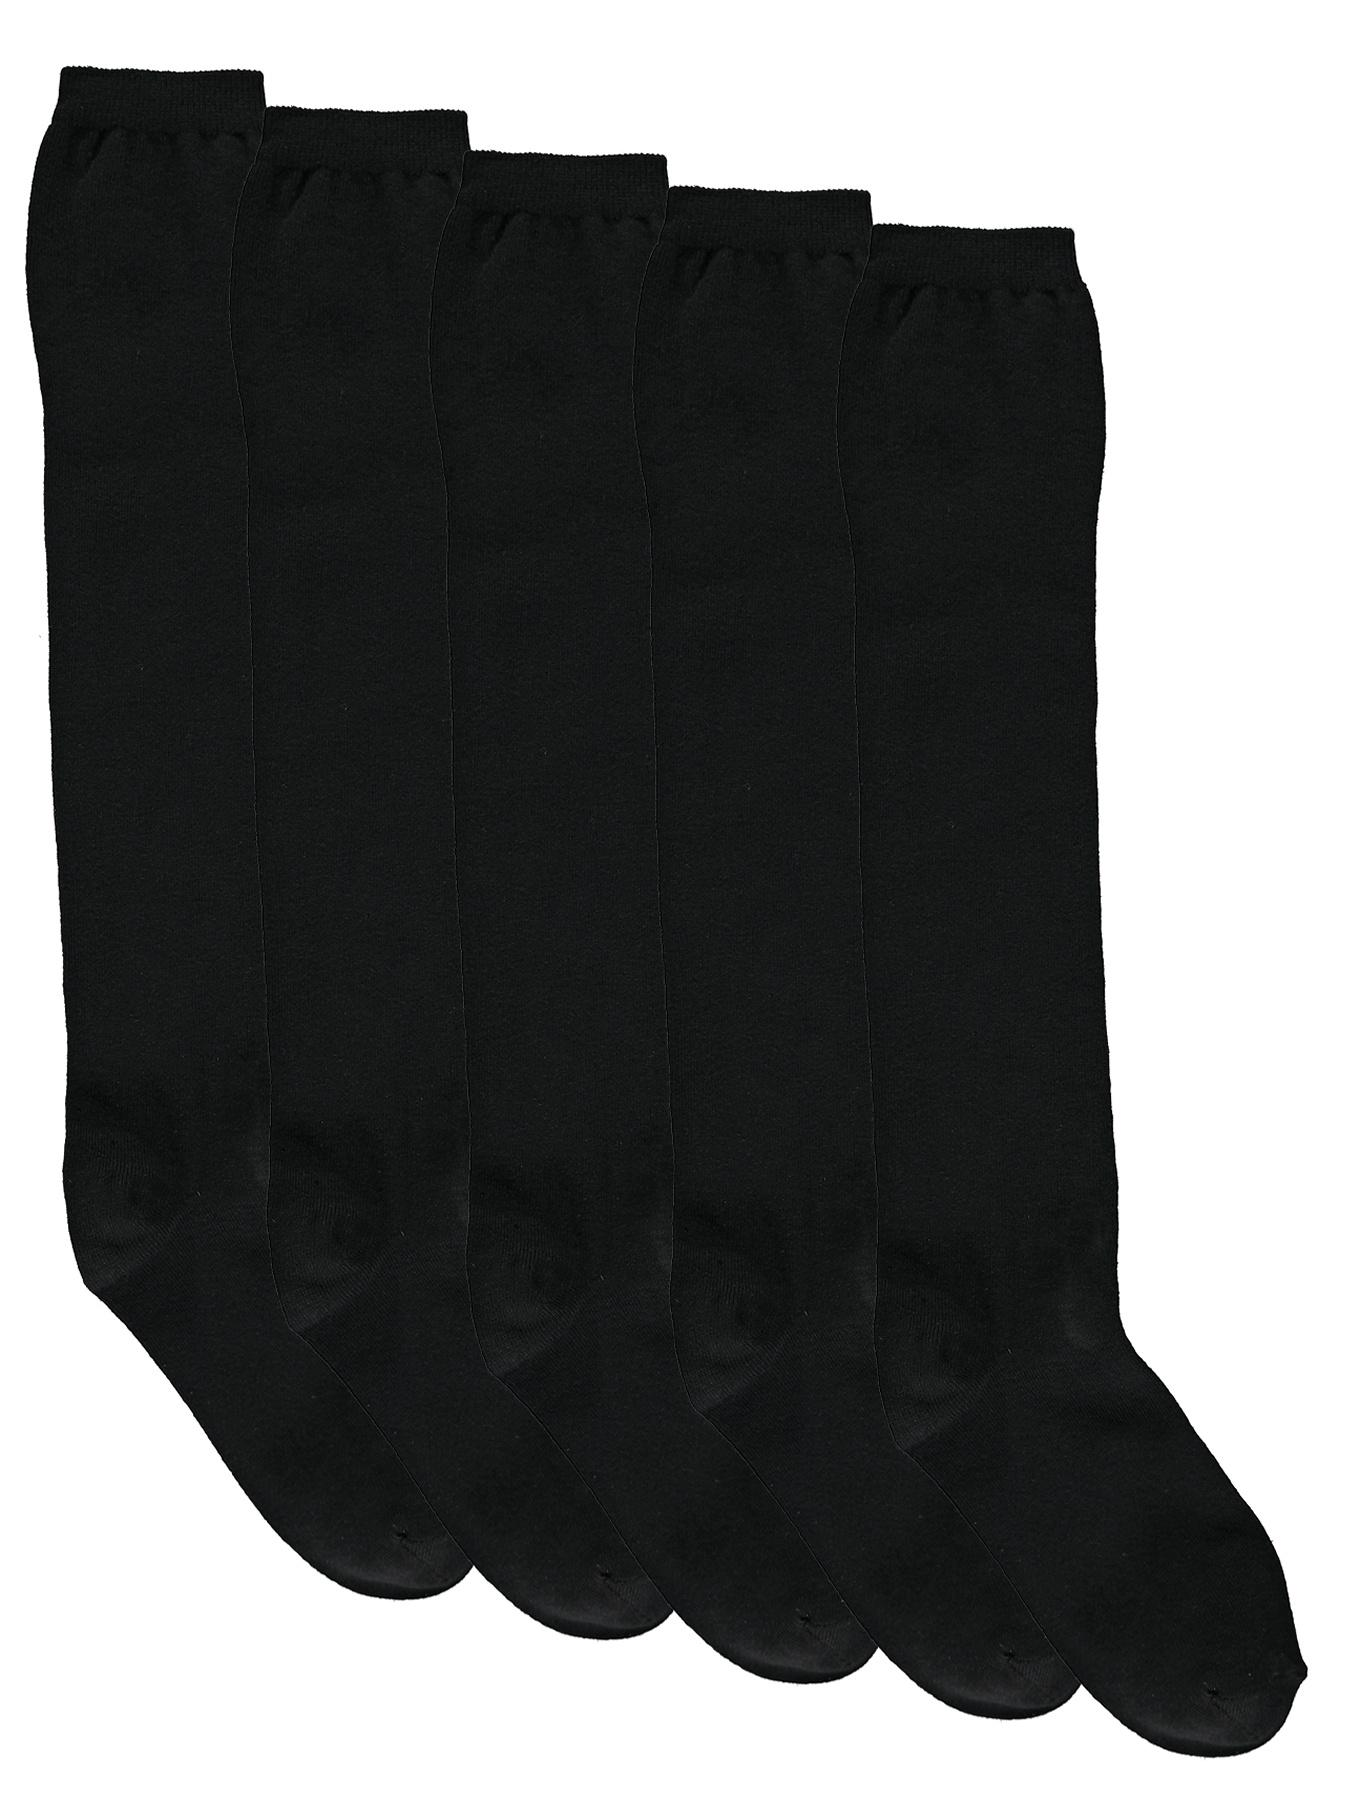 Knee High Socks (5 Pack), Black